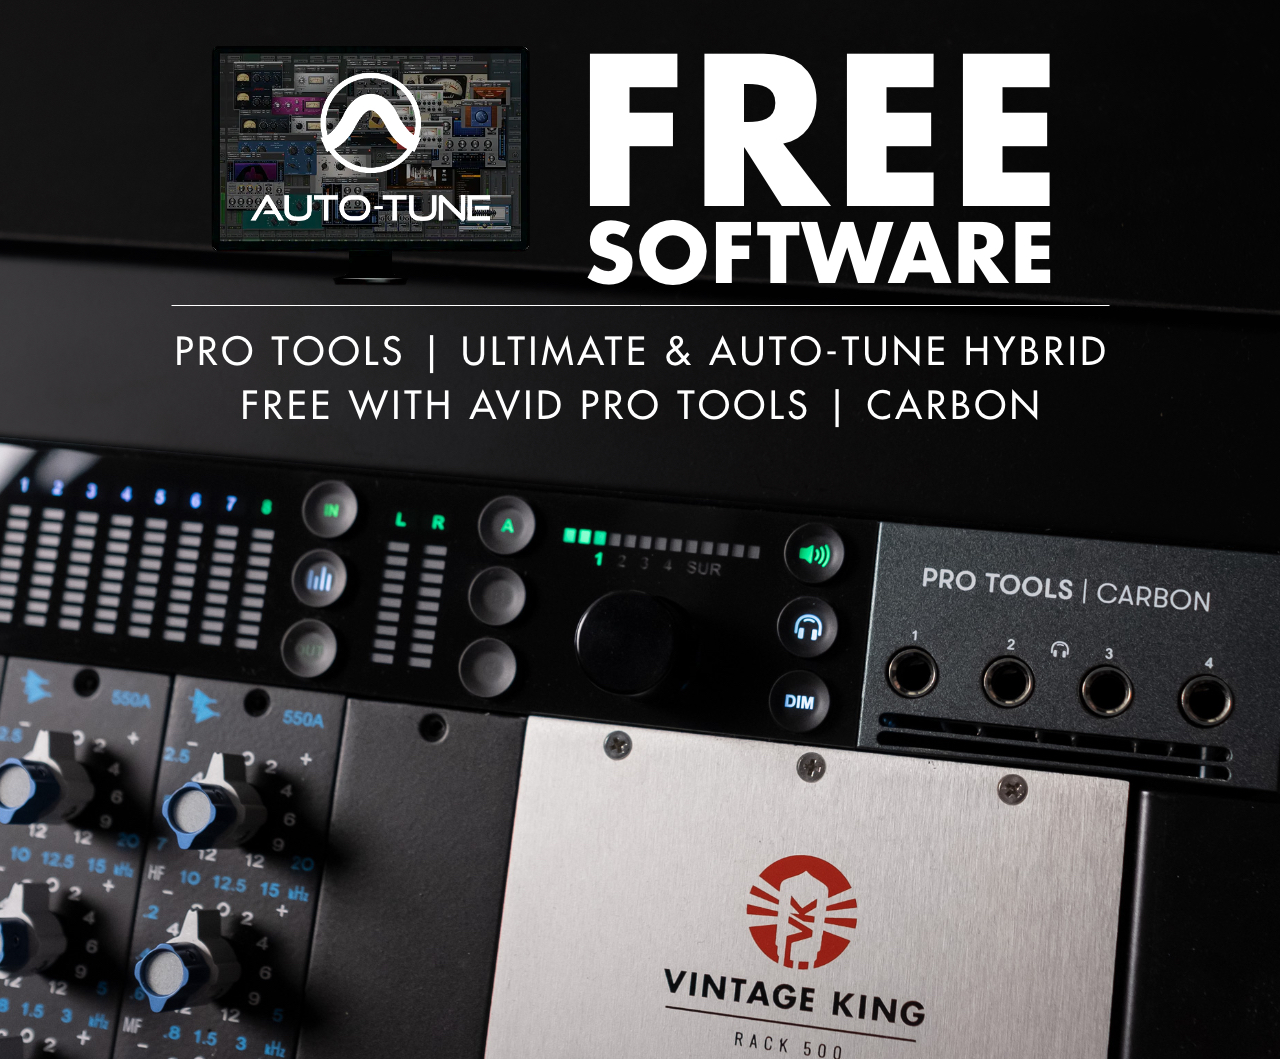 Free Pro Tools   Ultimate & Auto-Tune Hybrid With Avid Pro Tools   Carbon